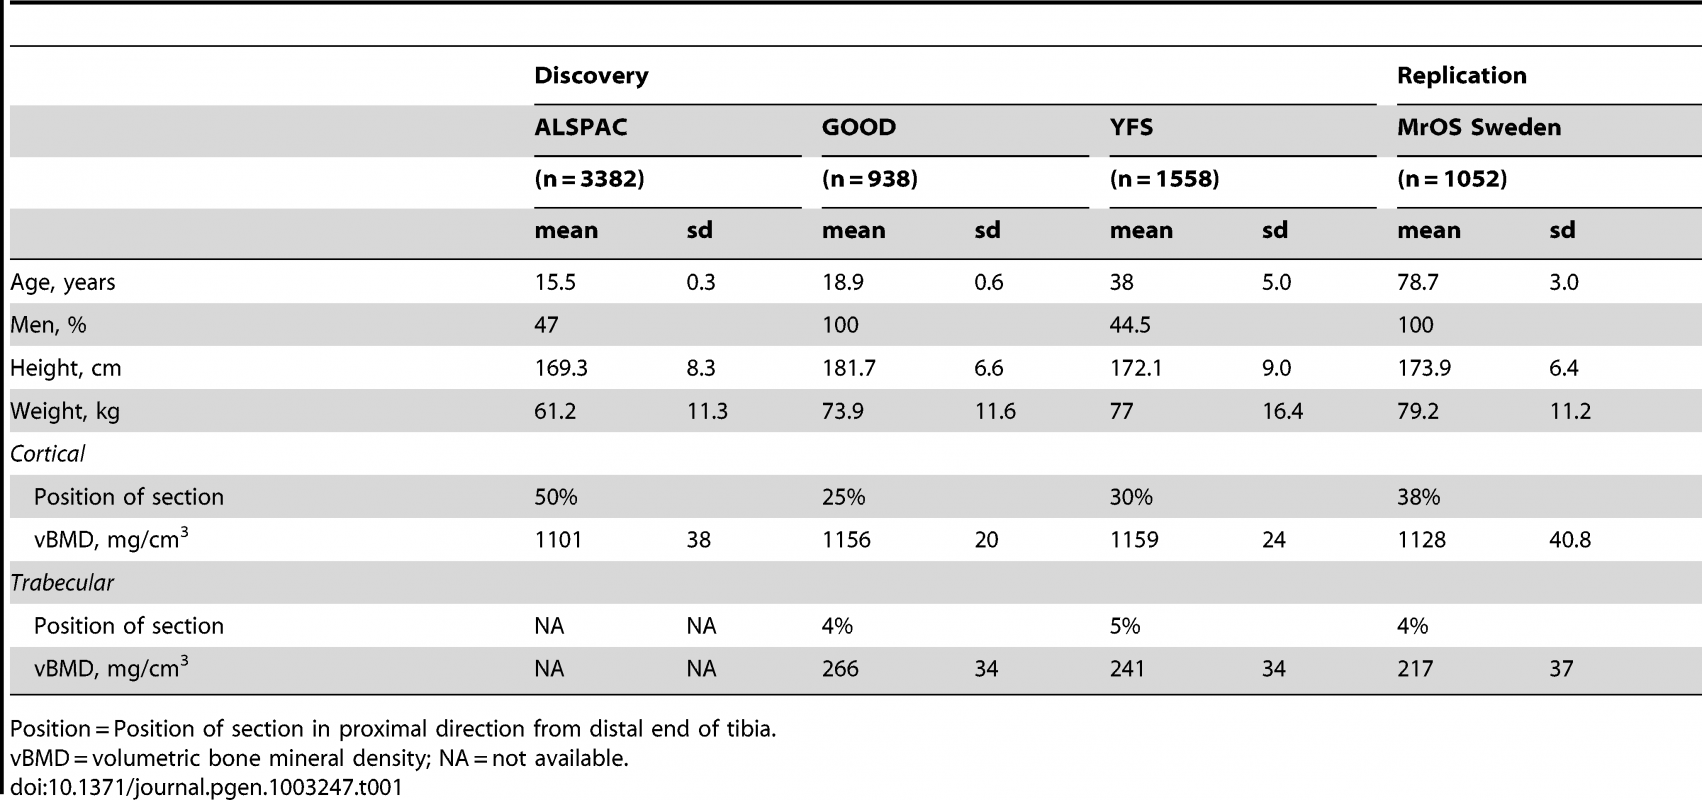 Characteristics of the cohorts included in the discovery GWA meta-analyses and replications.